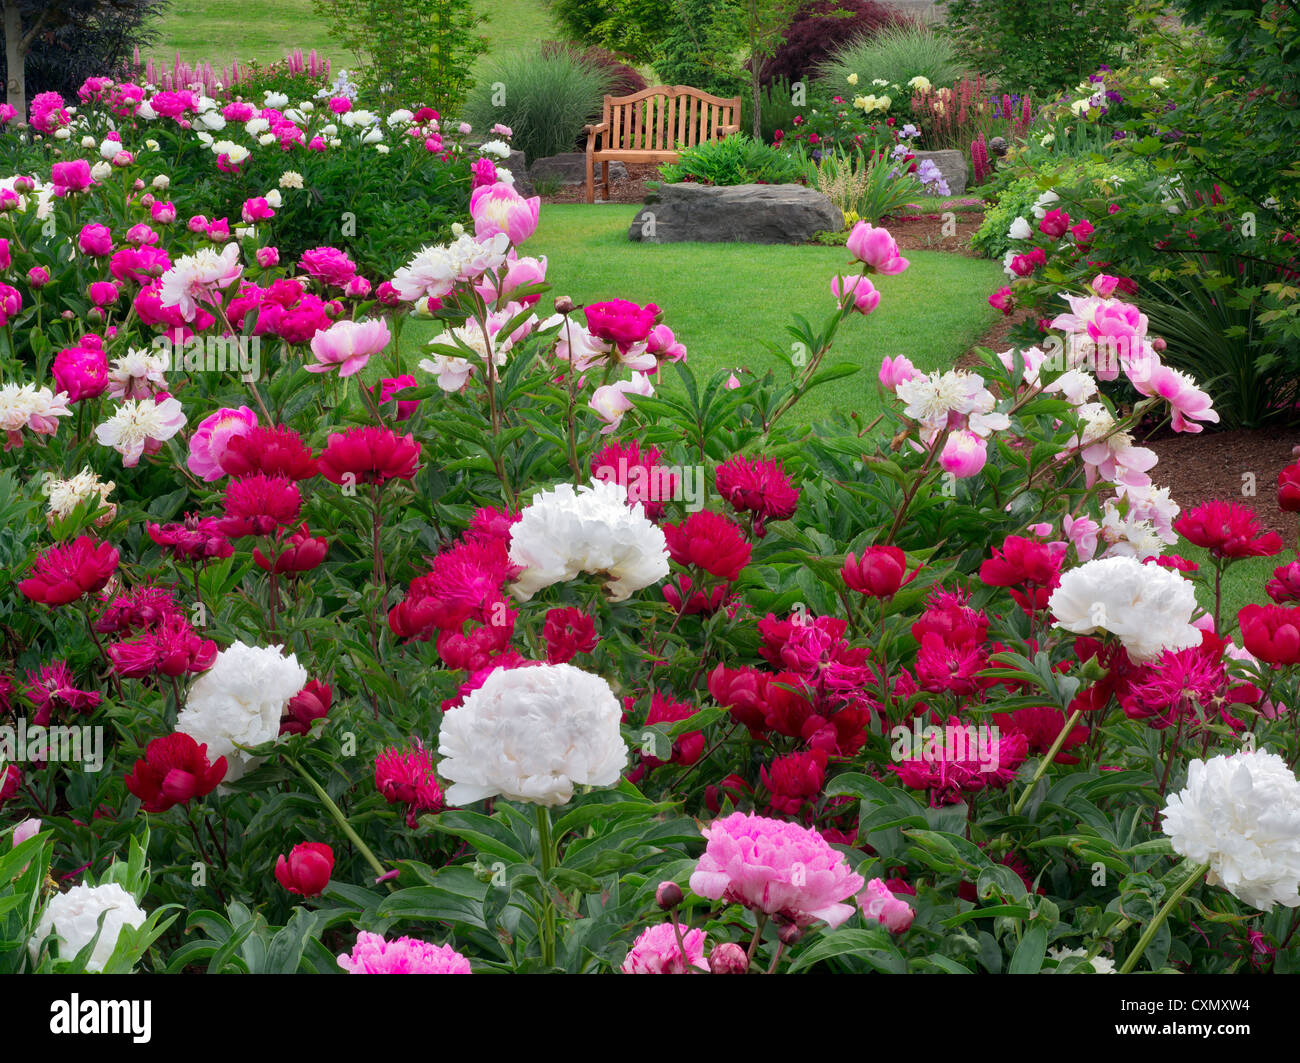 Peony garden and bench adleman peony garden salem oregon stock photo royalty free image - Growing peonies in the garden ...